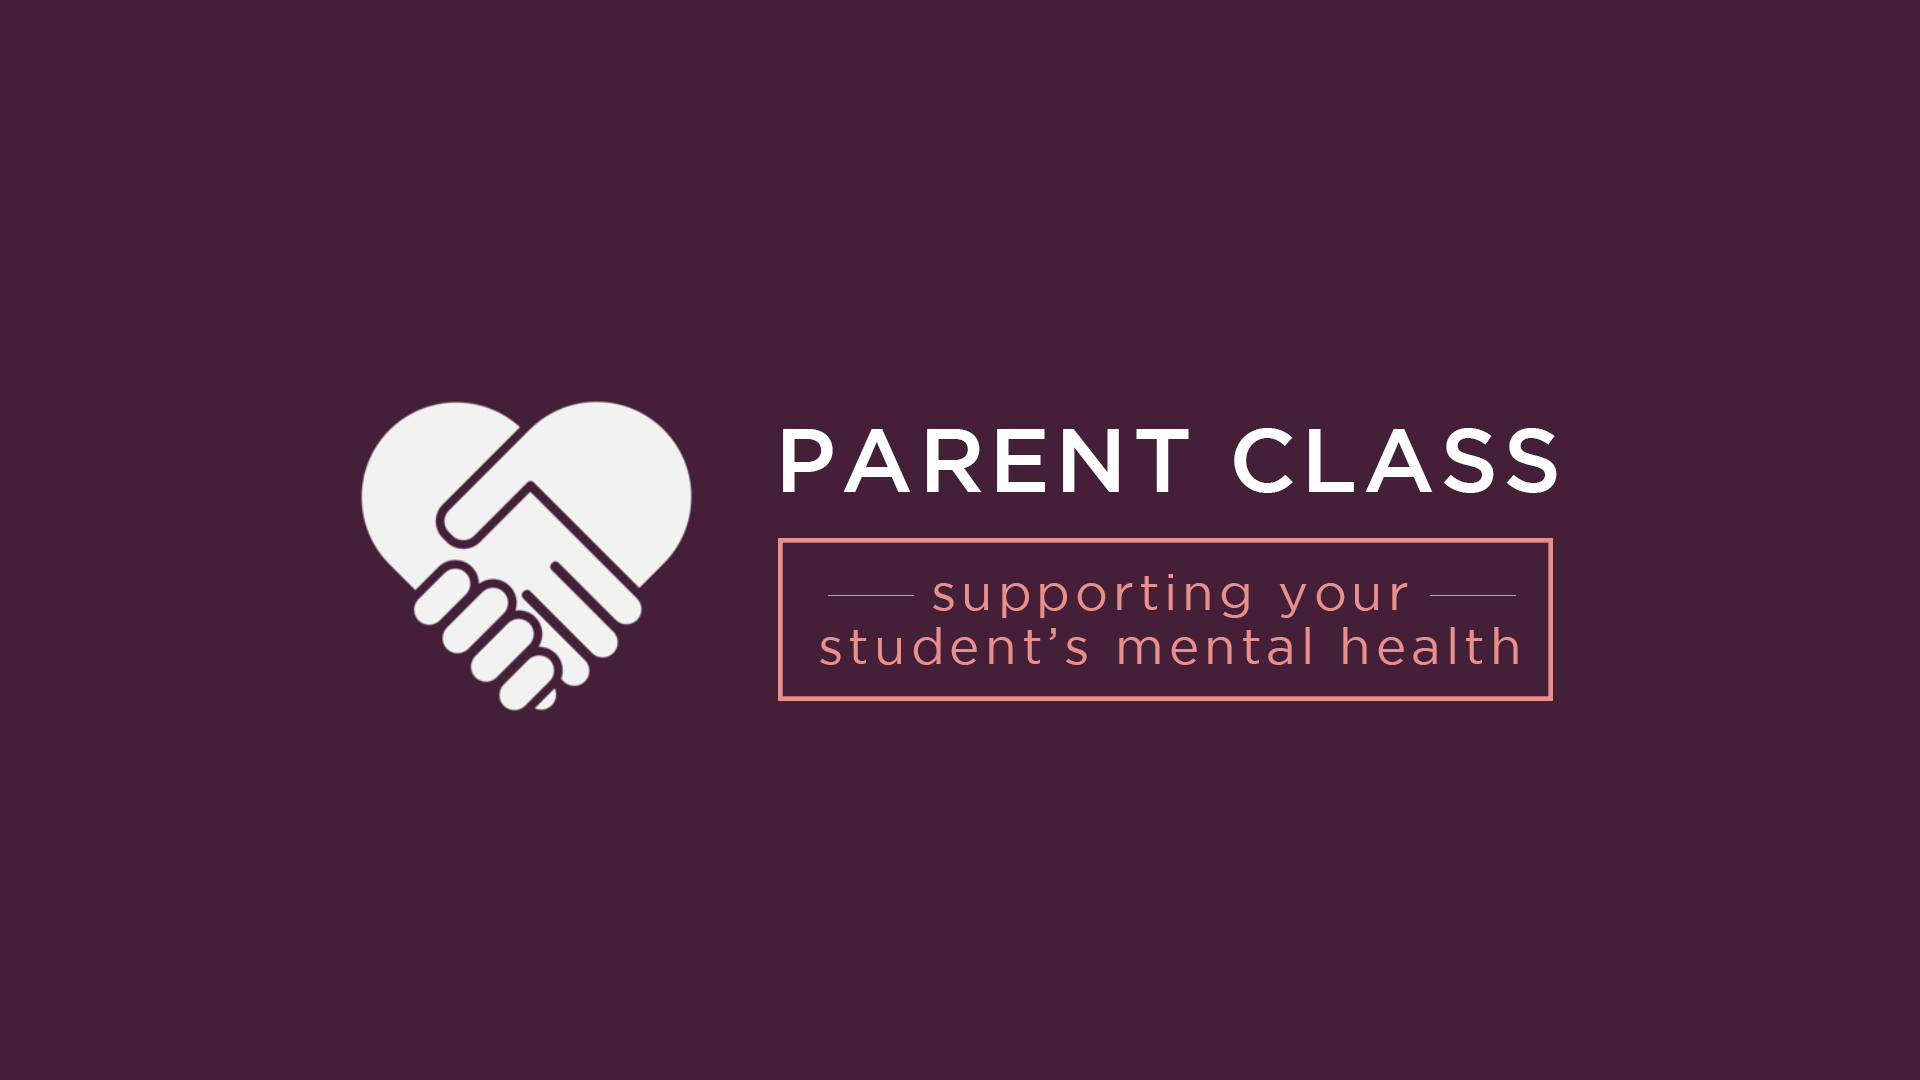 Parent Class: Supporting Your Student's Mental Health